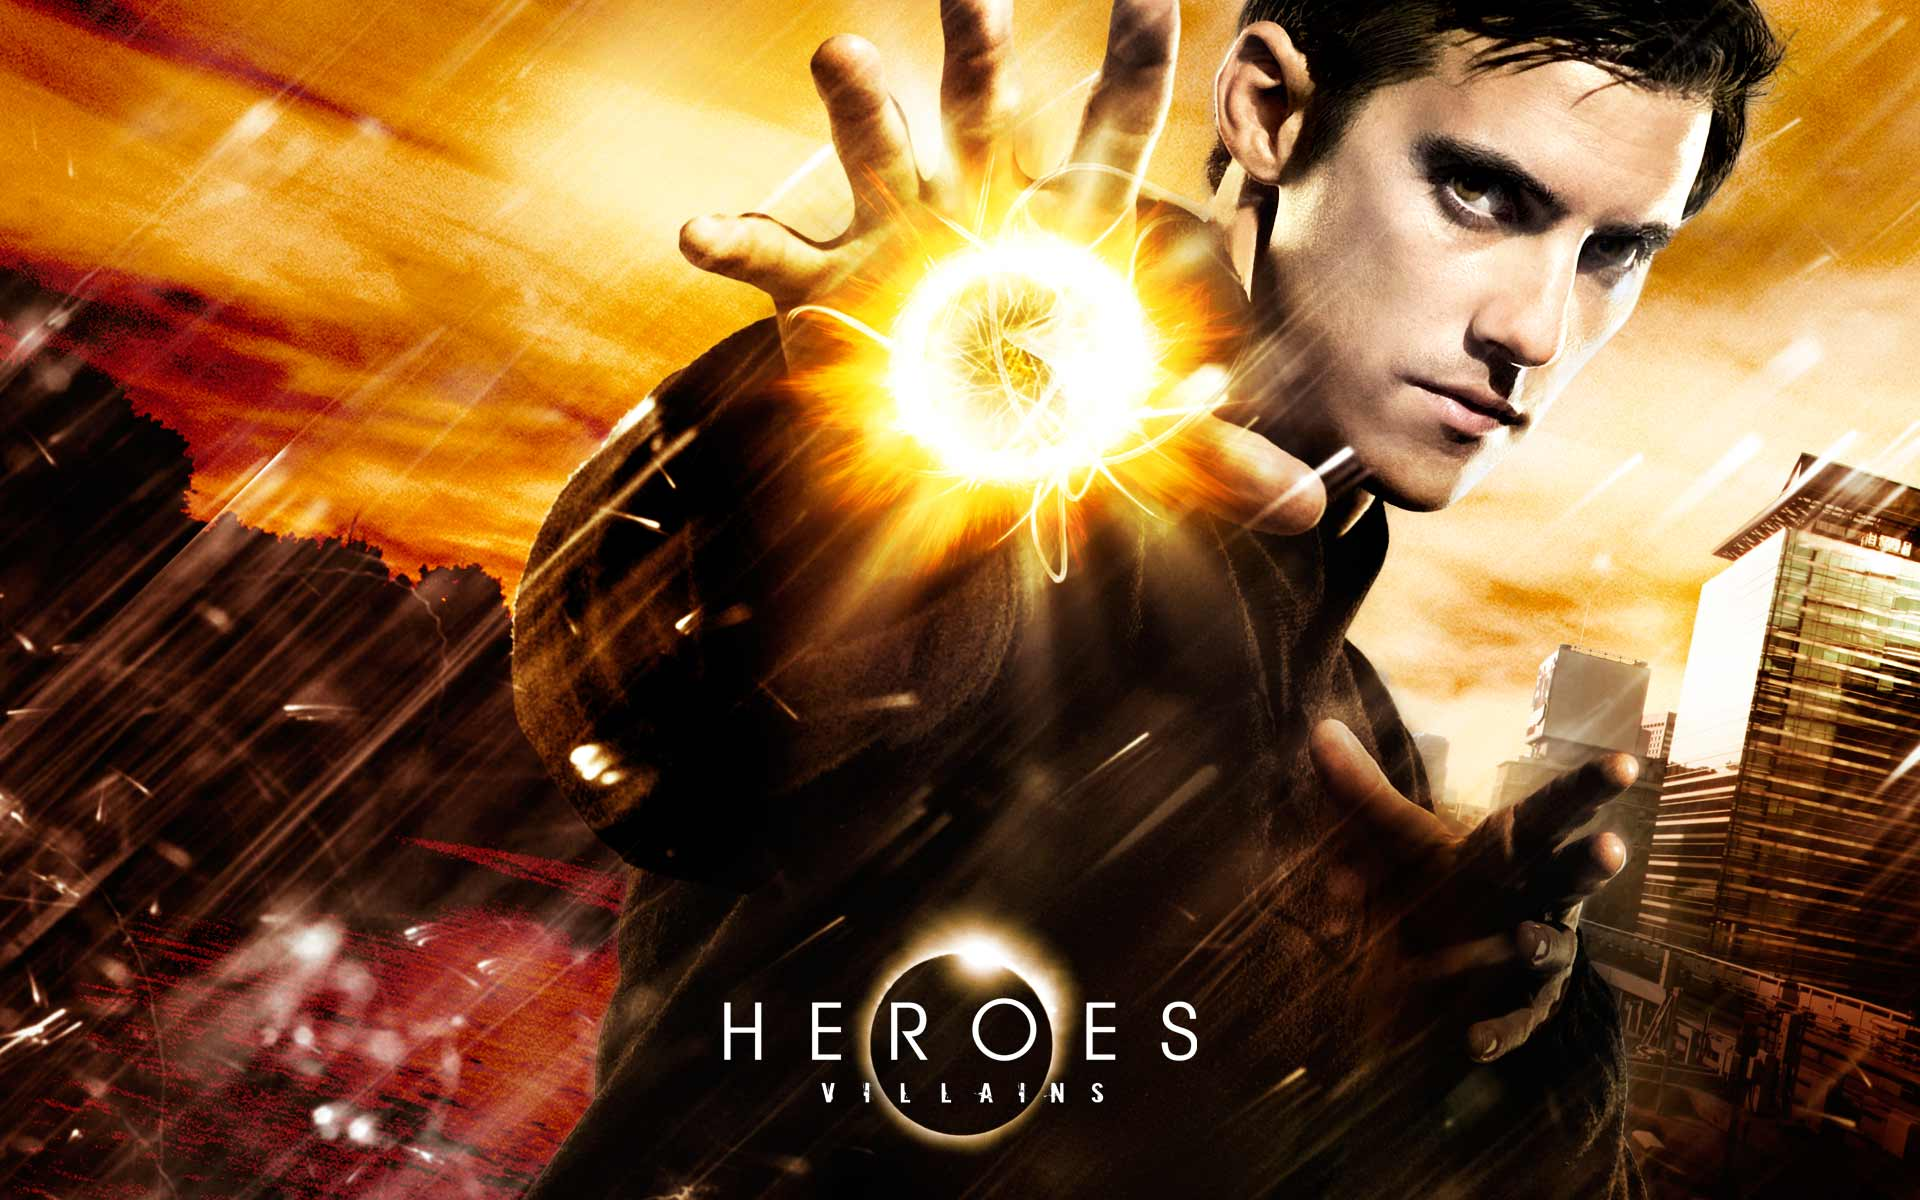 Peter from Heroes